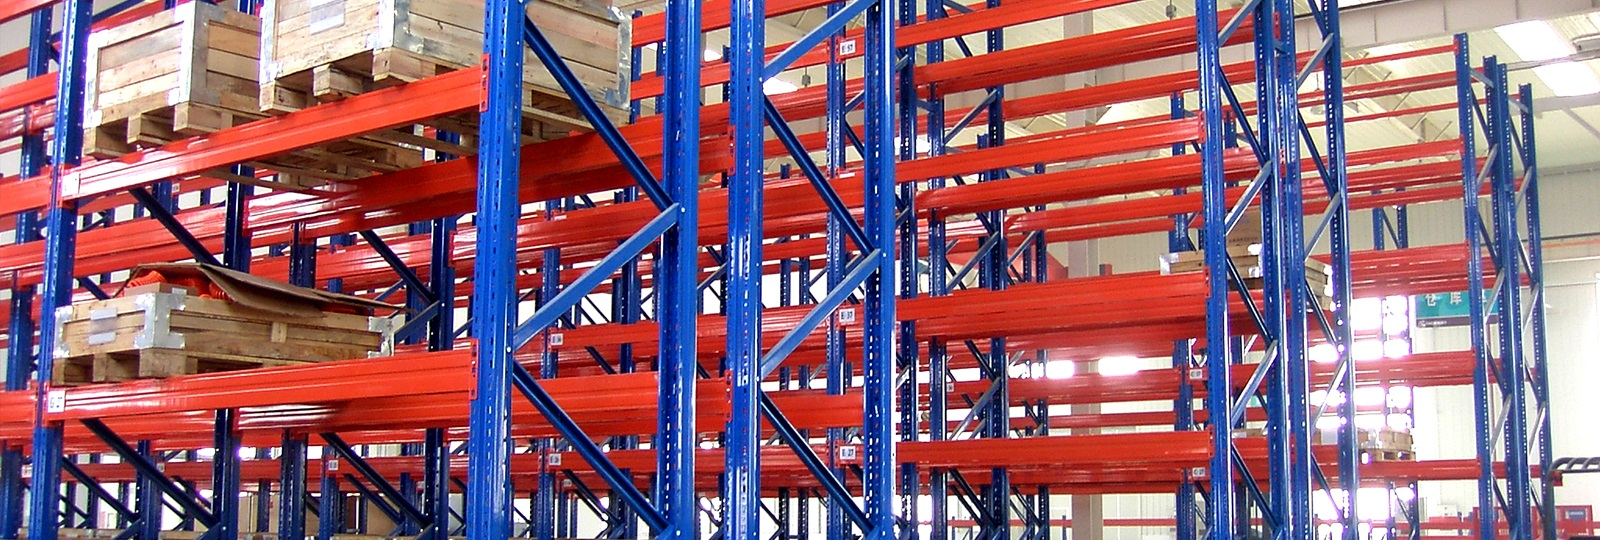 owuace Warehouse rack